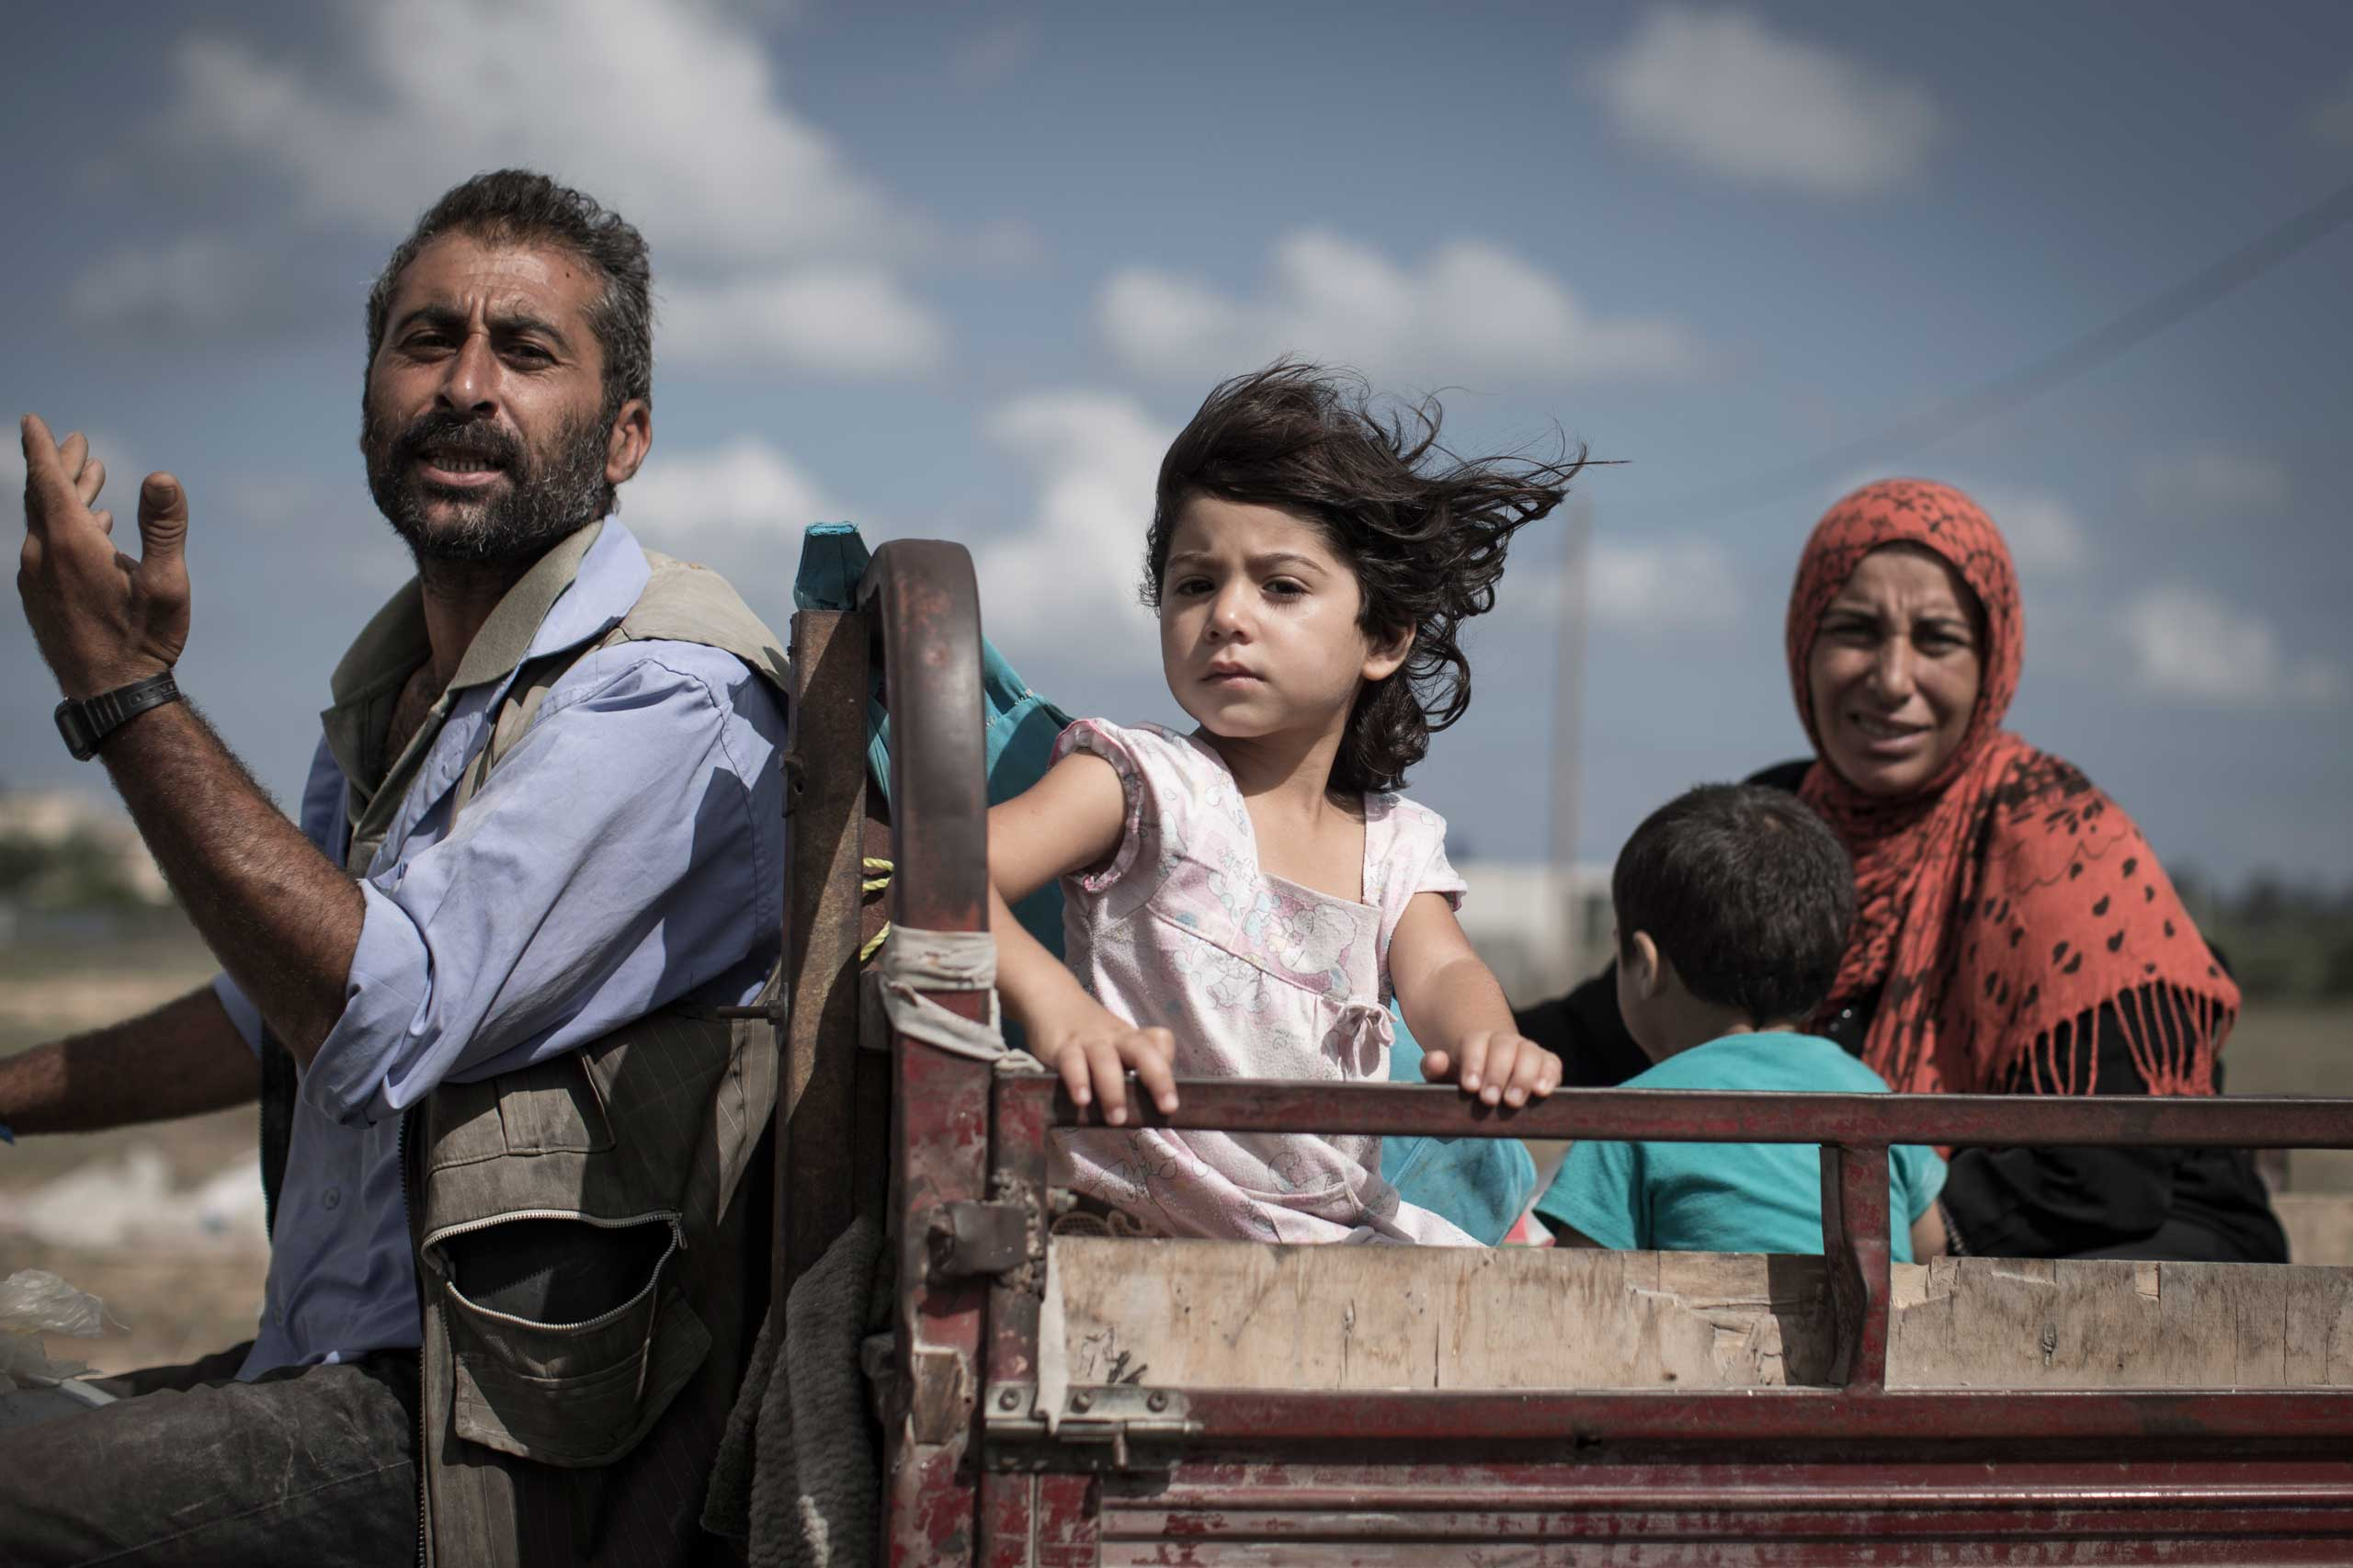 A Palestinian family who fled their home is en route to seek shelter at a U.N. school in Khan Younis, central Gaza Strip, July 18, 2014.